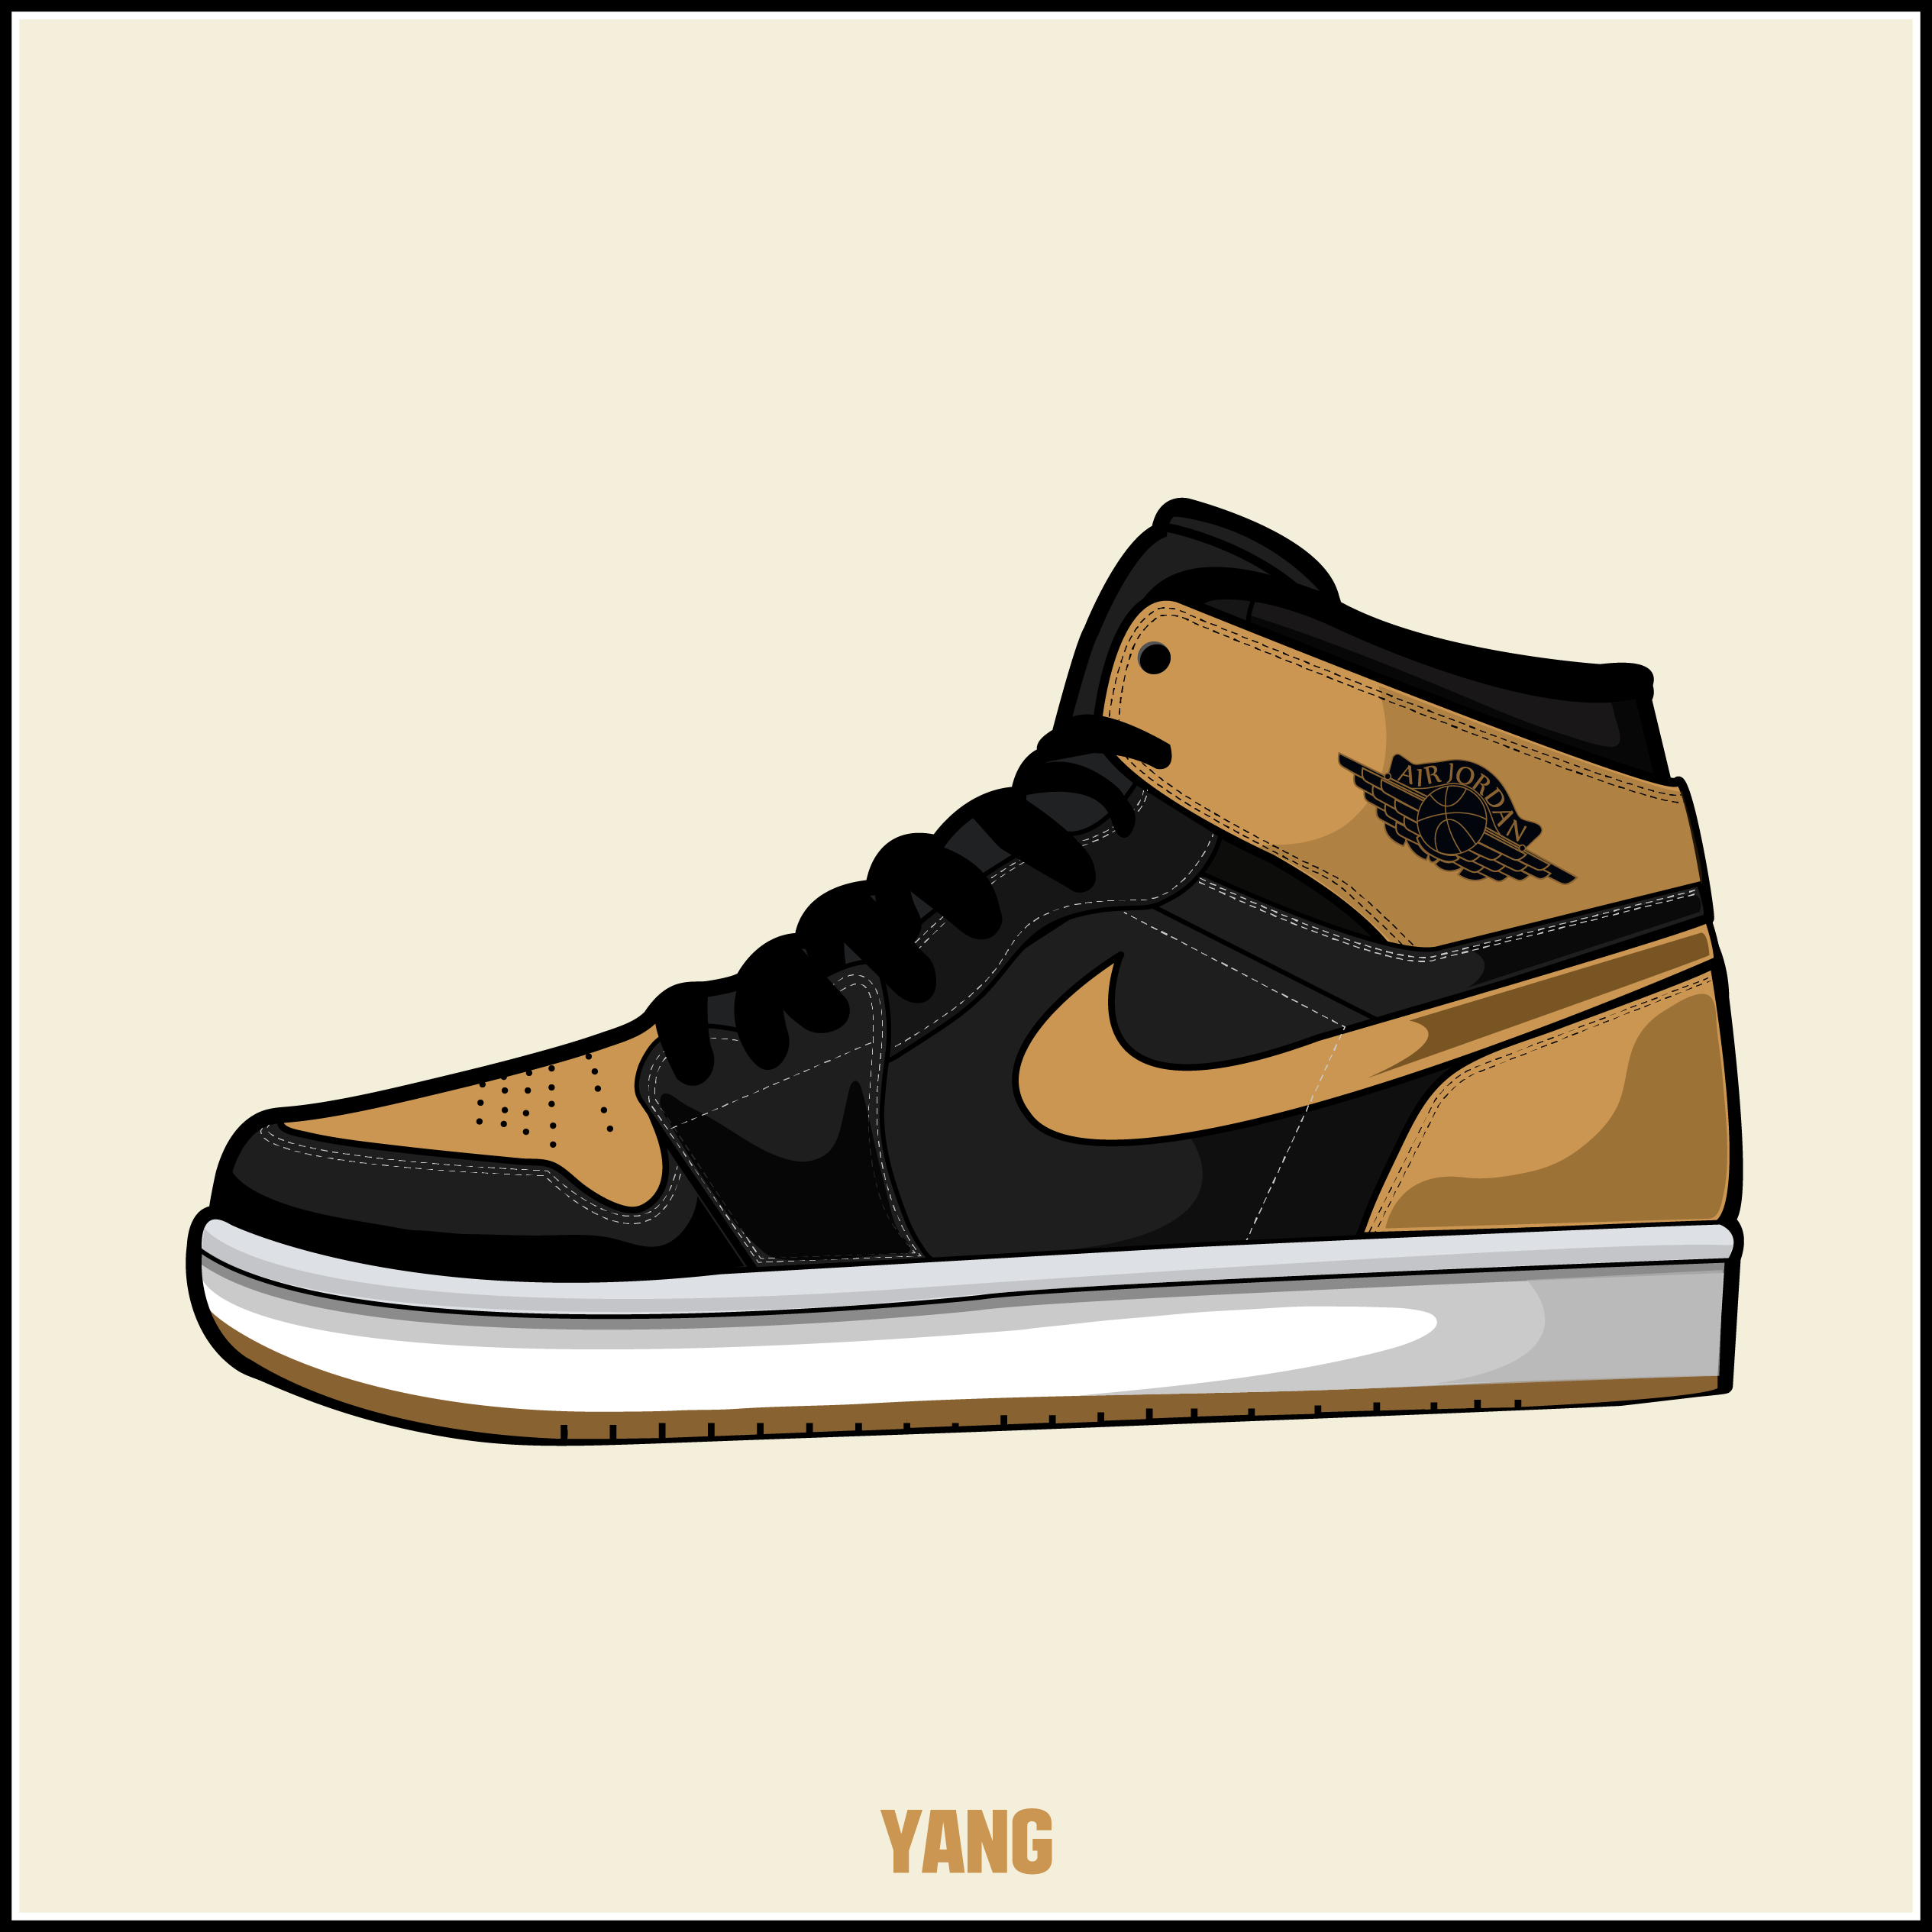 2530x2530 Jordan Shoes Clipart